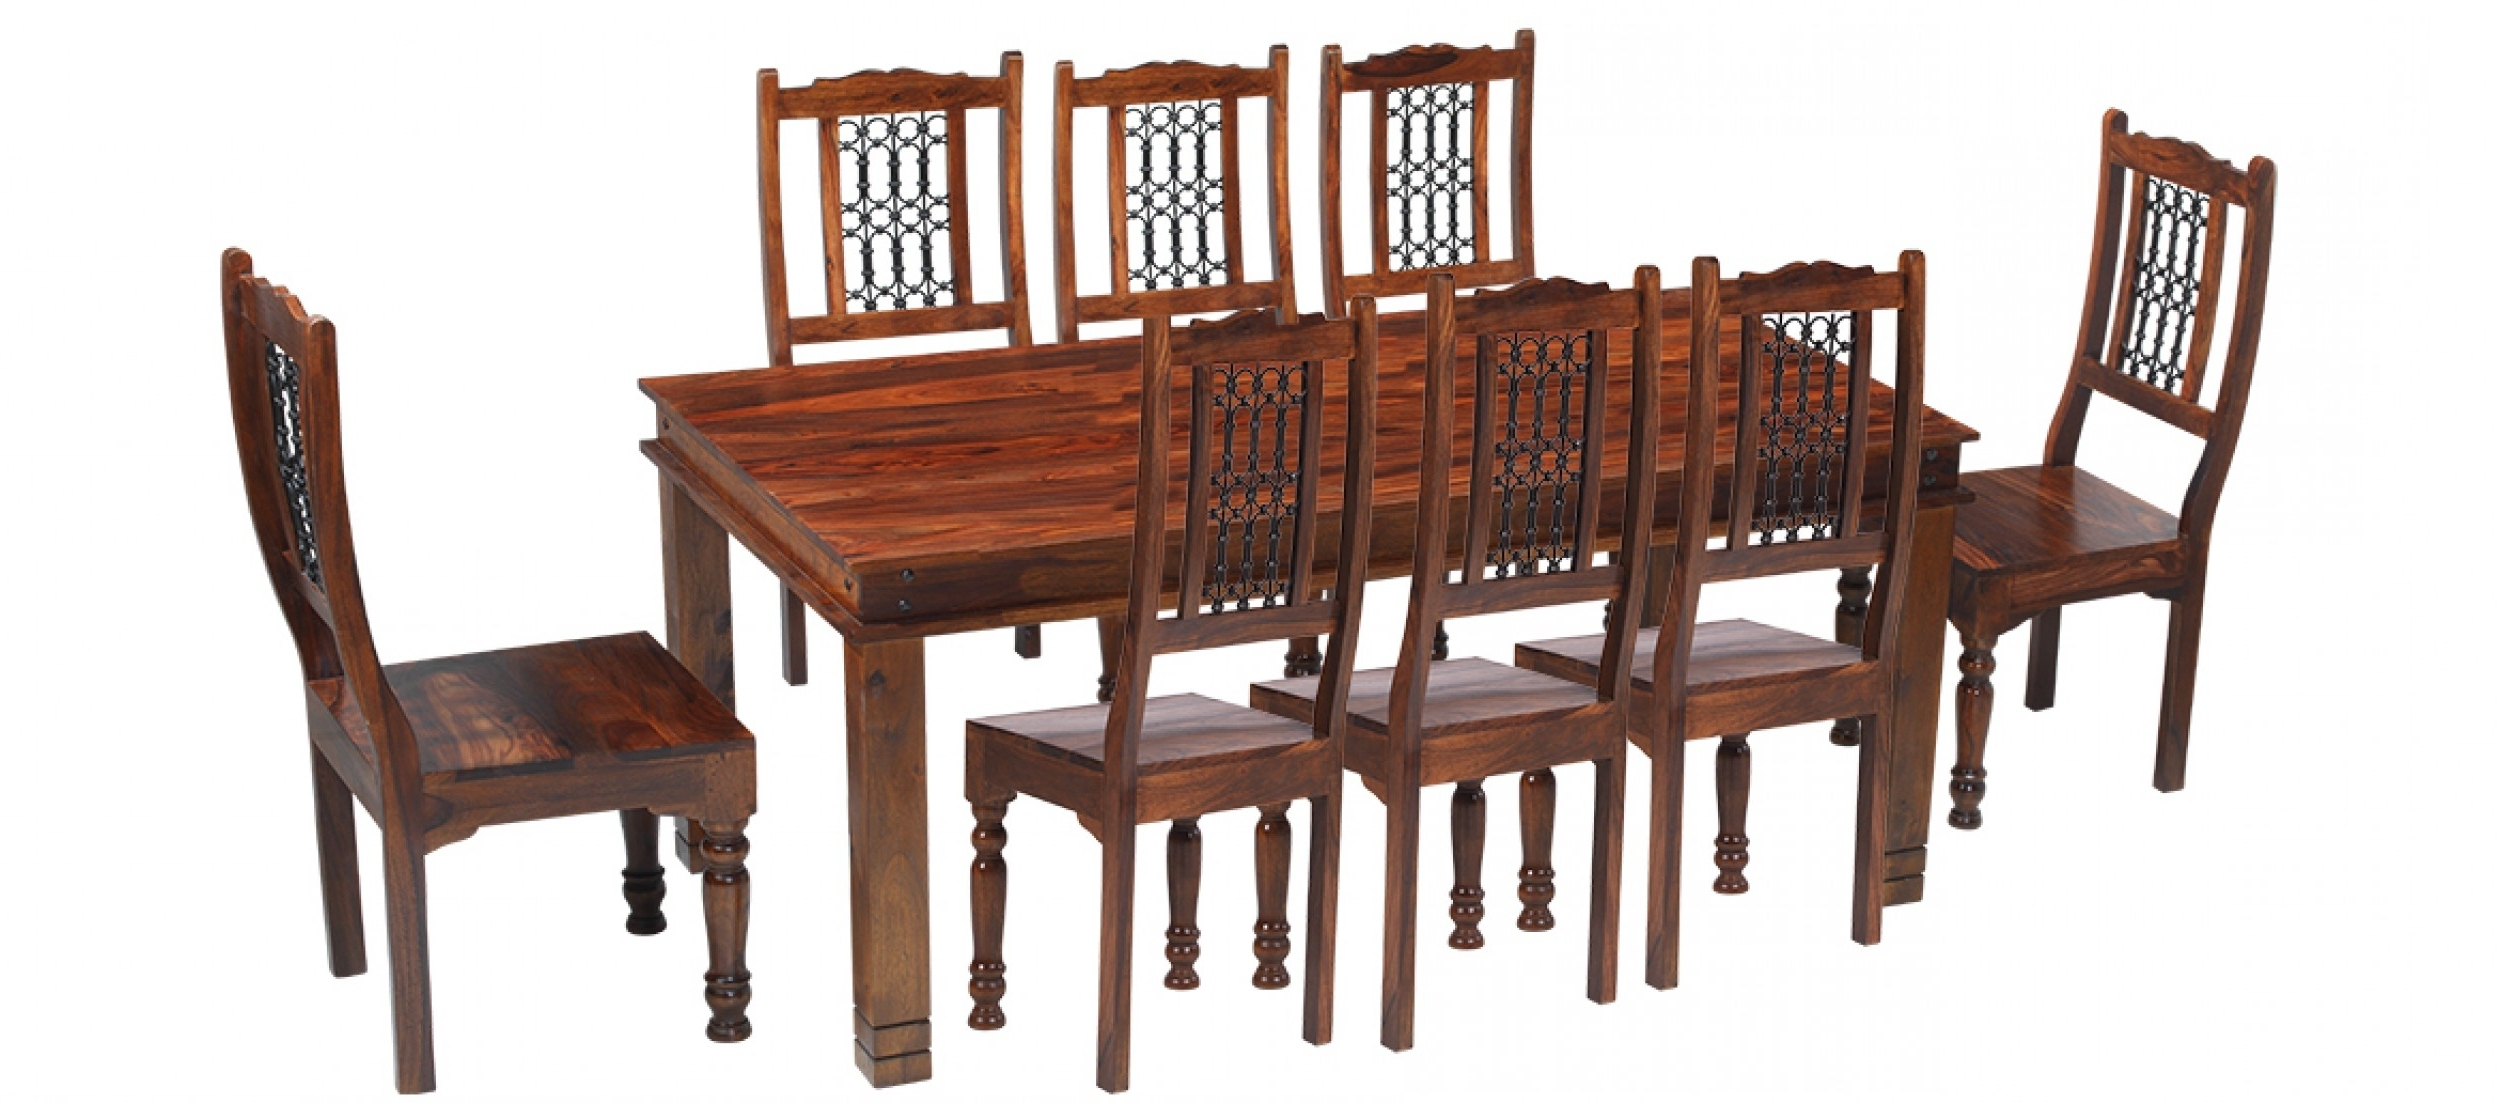 8 Chairs Dining Tables Regarding 2018 Jali Sheesham 200 Cm Chunky Dining Table And 8 Chairs (View 6 of 25)